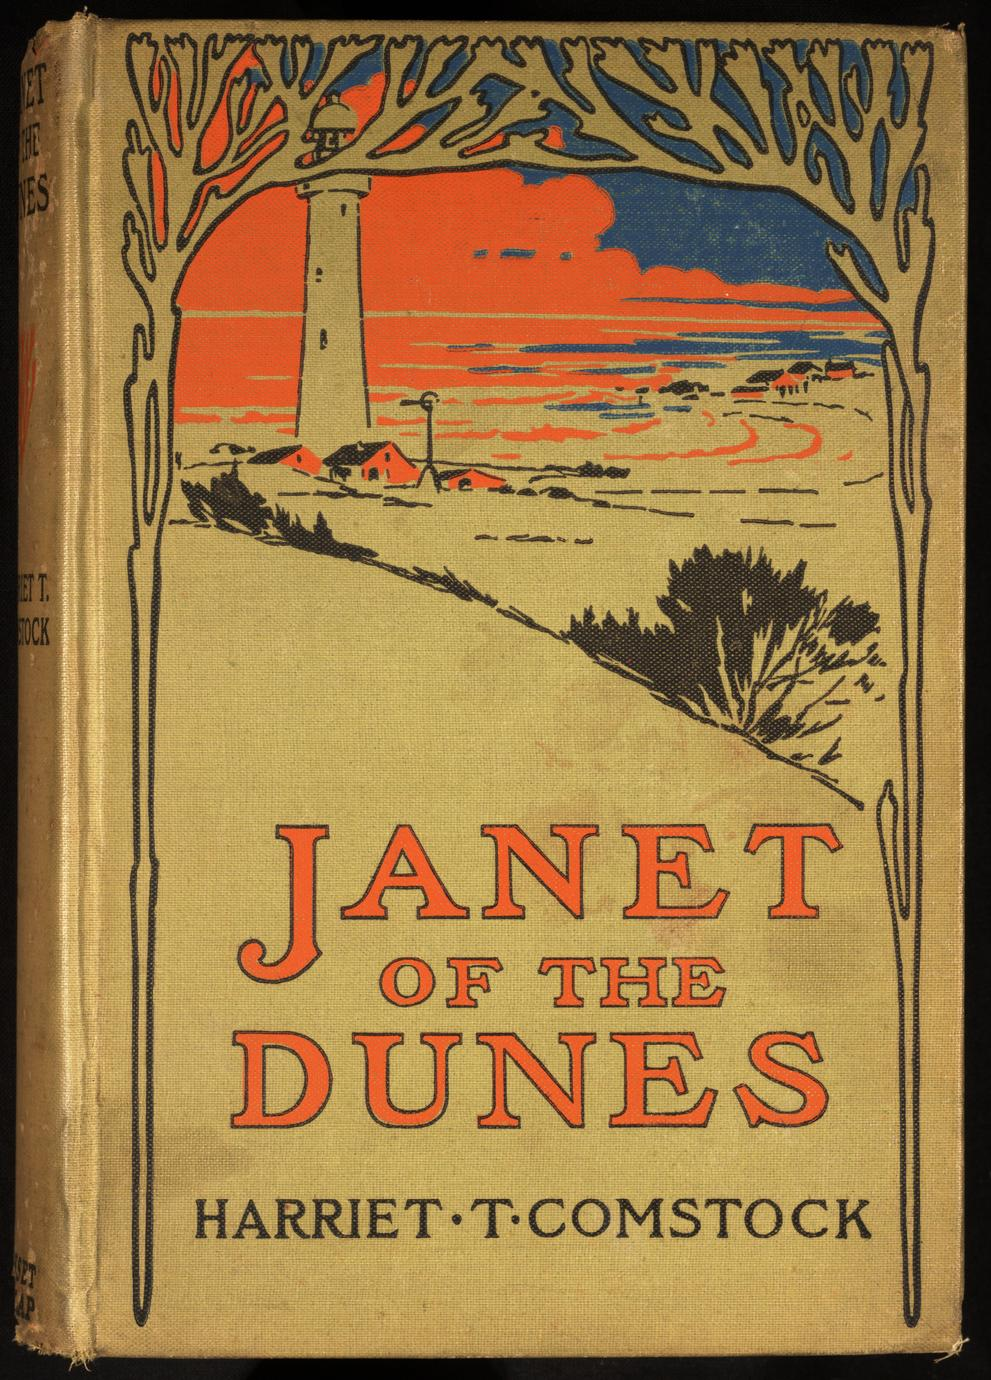 Janet of the dunes (1 of 2)